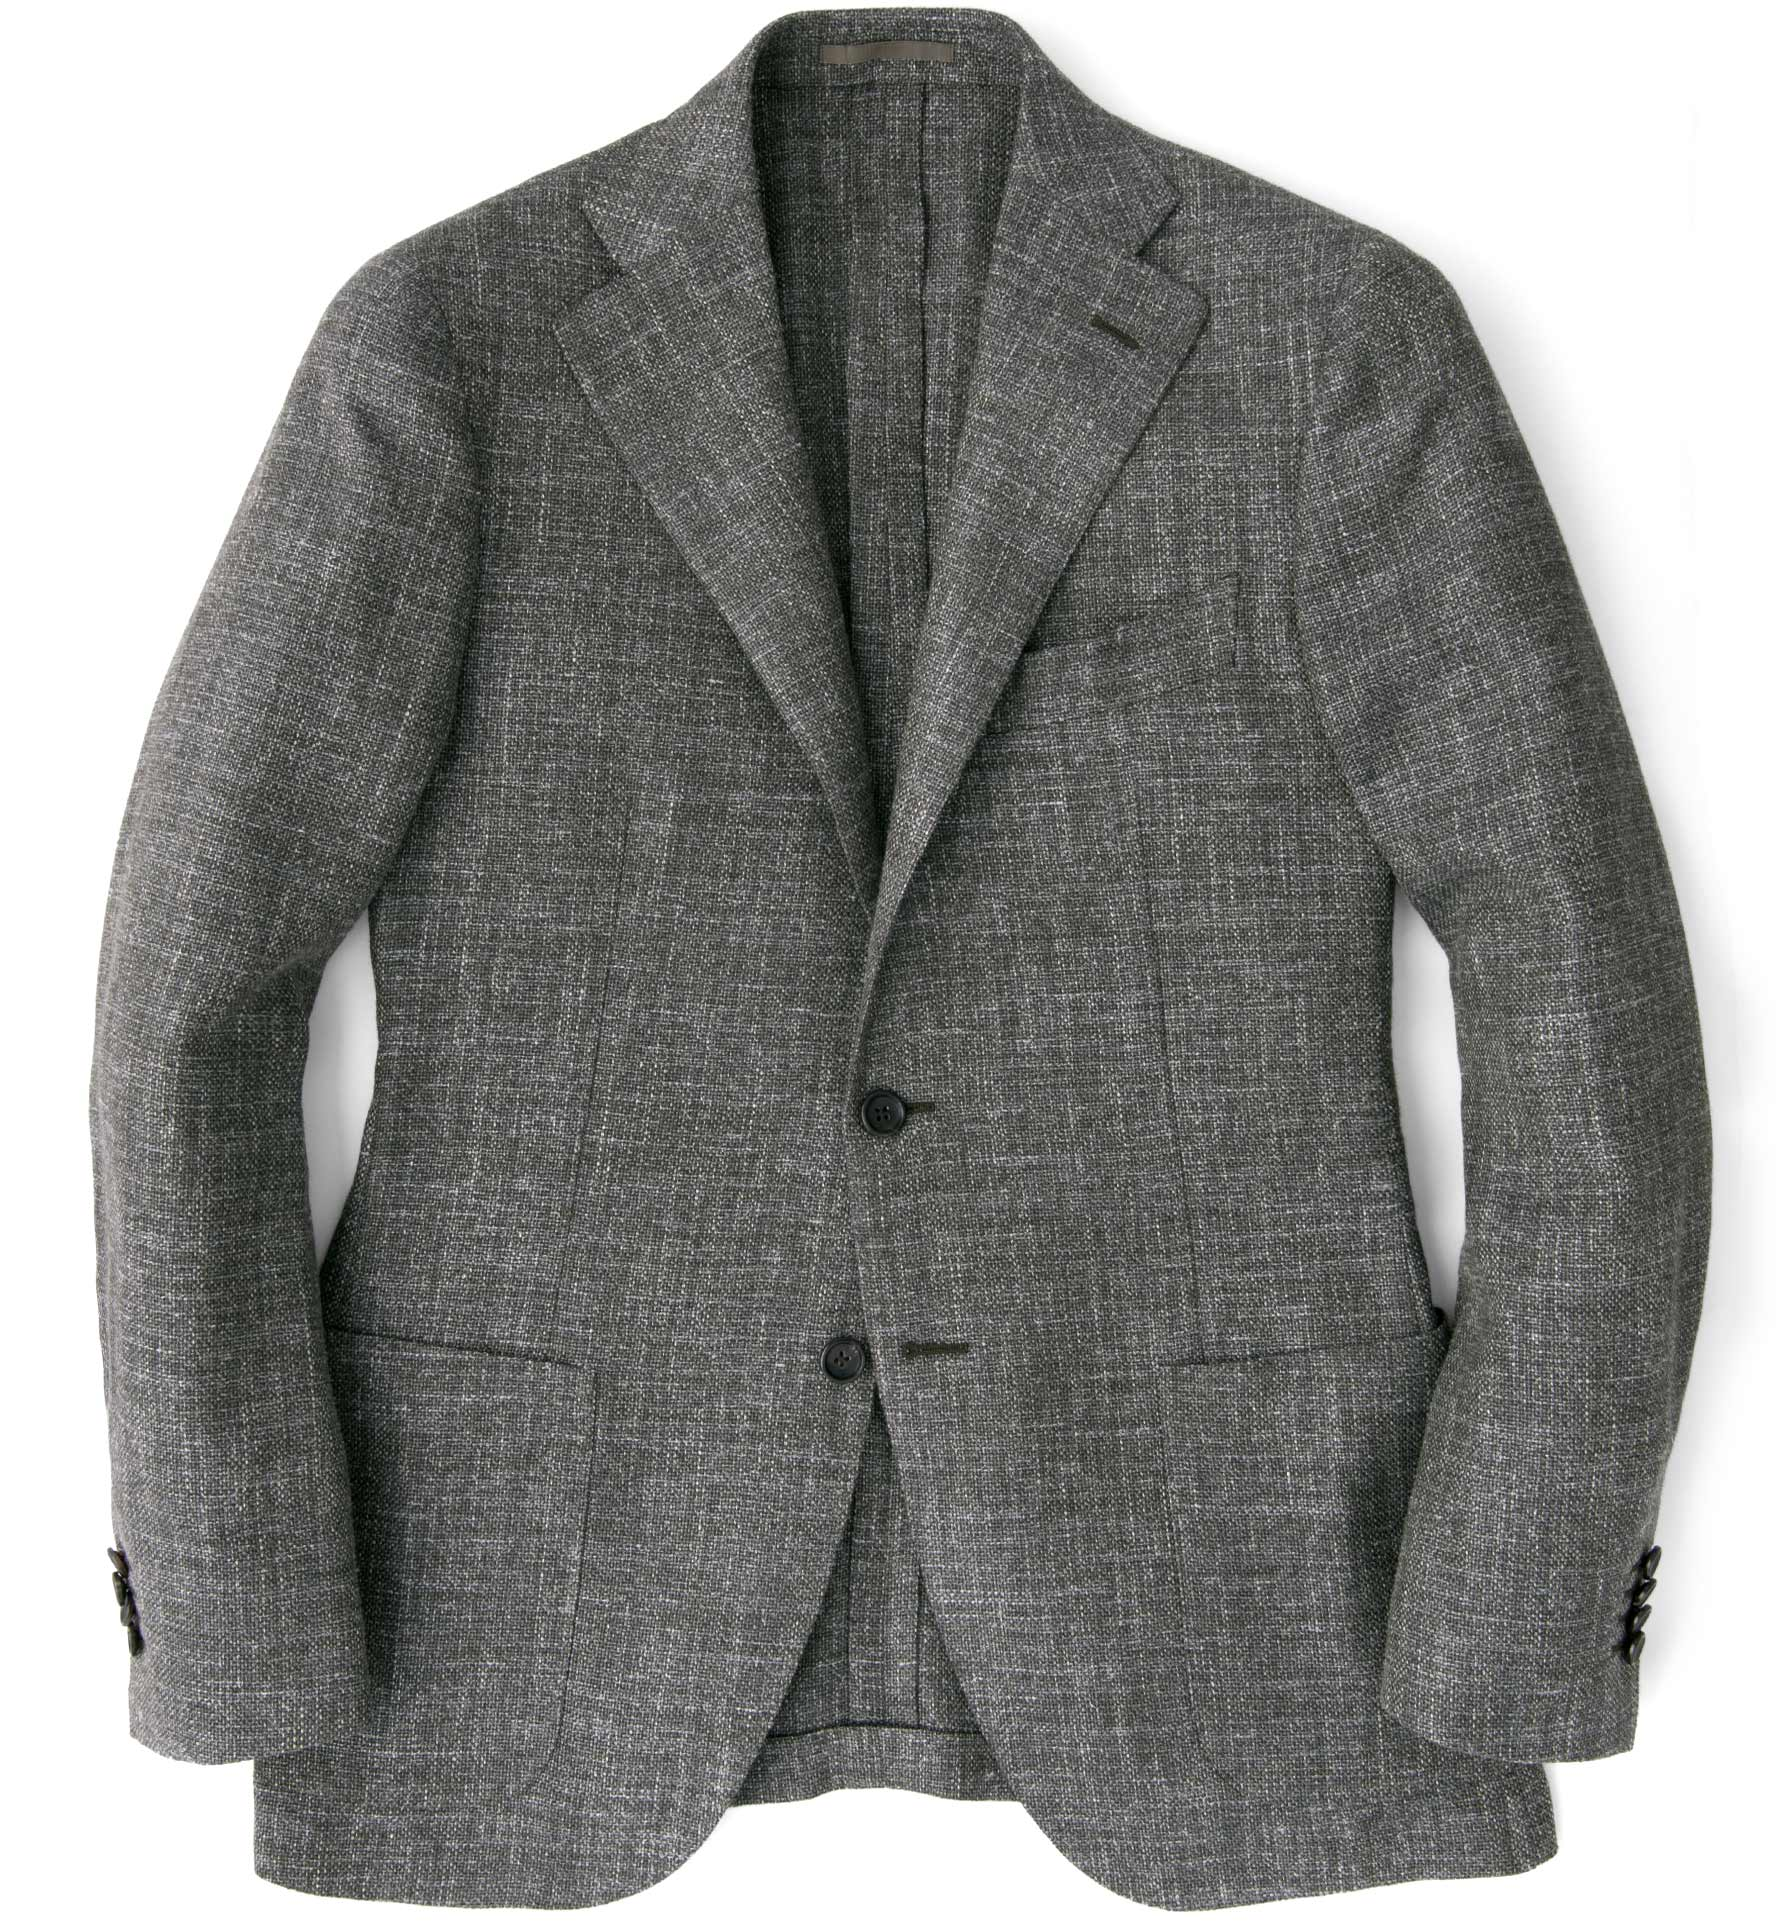 Zoom Image of Hudson Fatigue Basketweave Jacket